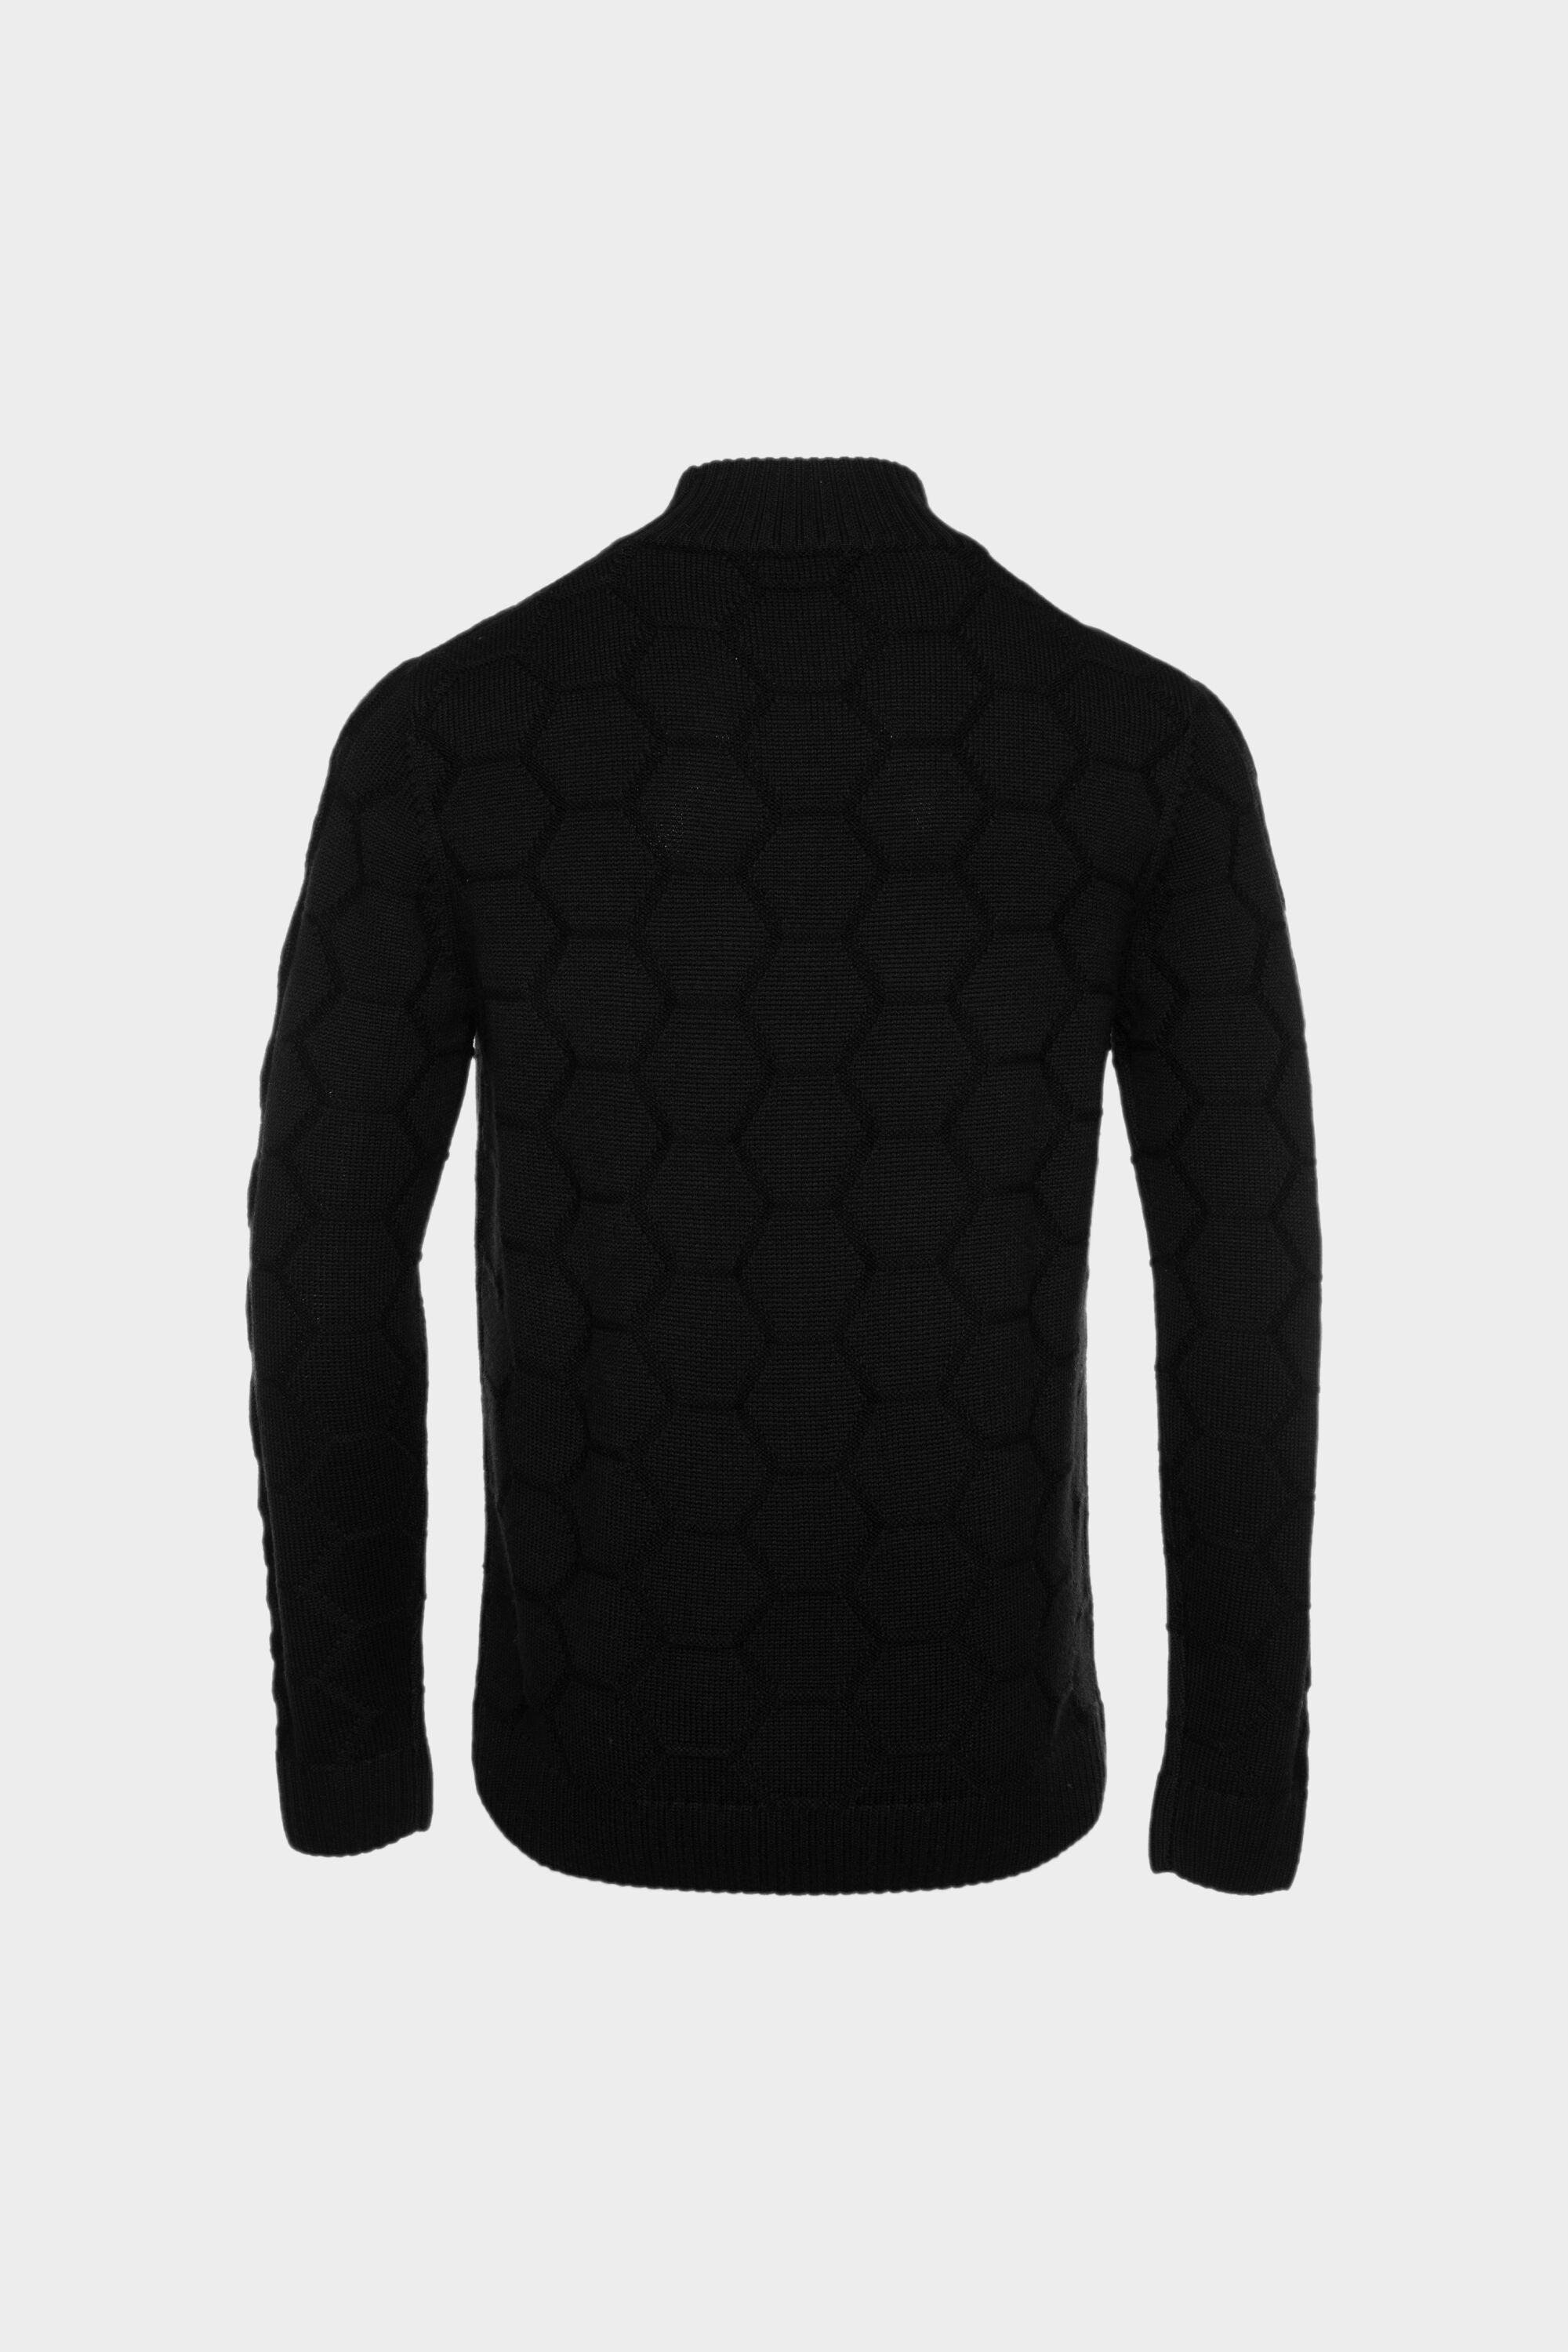 Knitted Hexagon Sweater